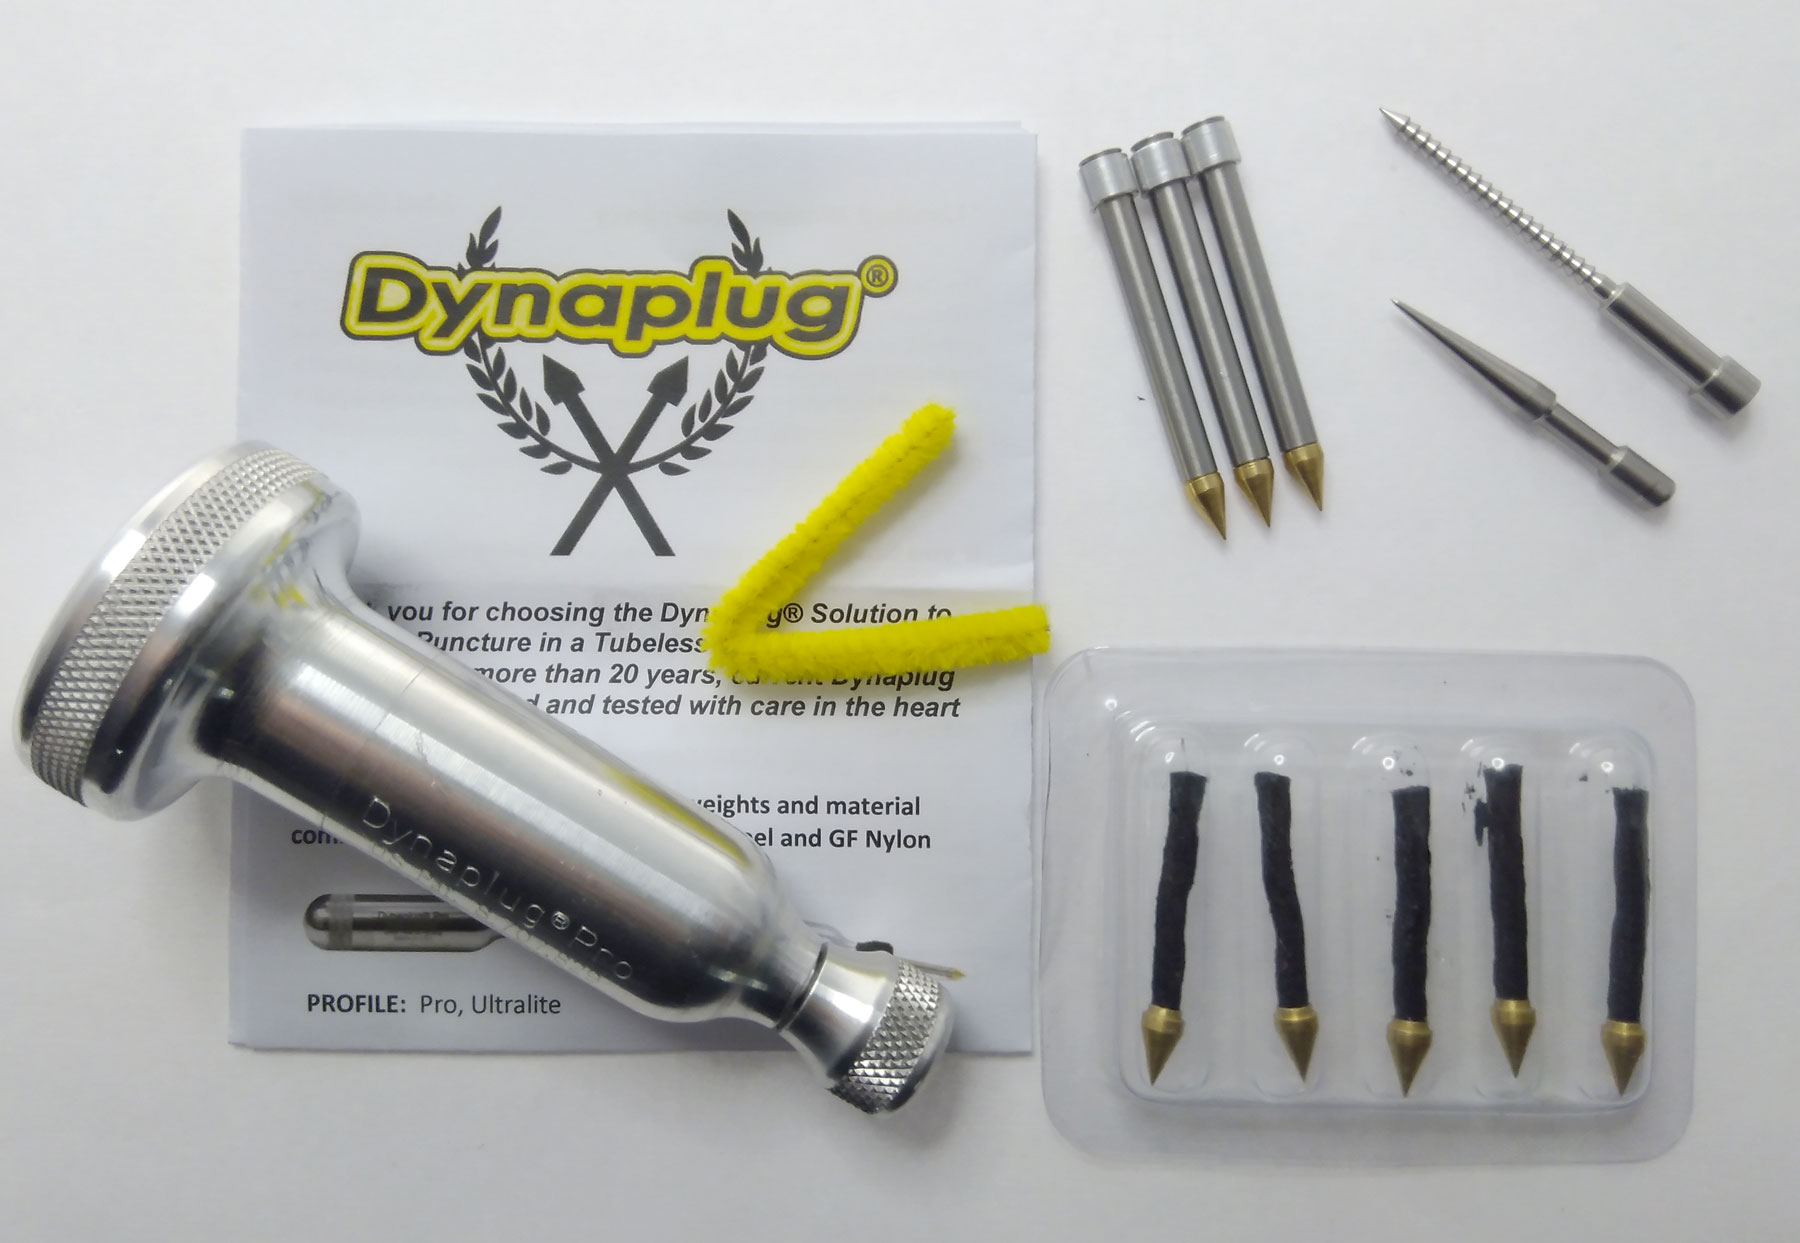 Dynaplug Pro Xtreme Tubeless Tyre Repair Kit - Stainless Steel